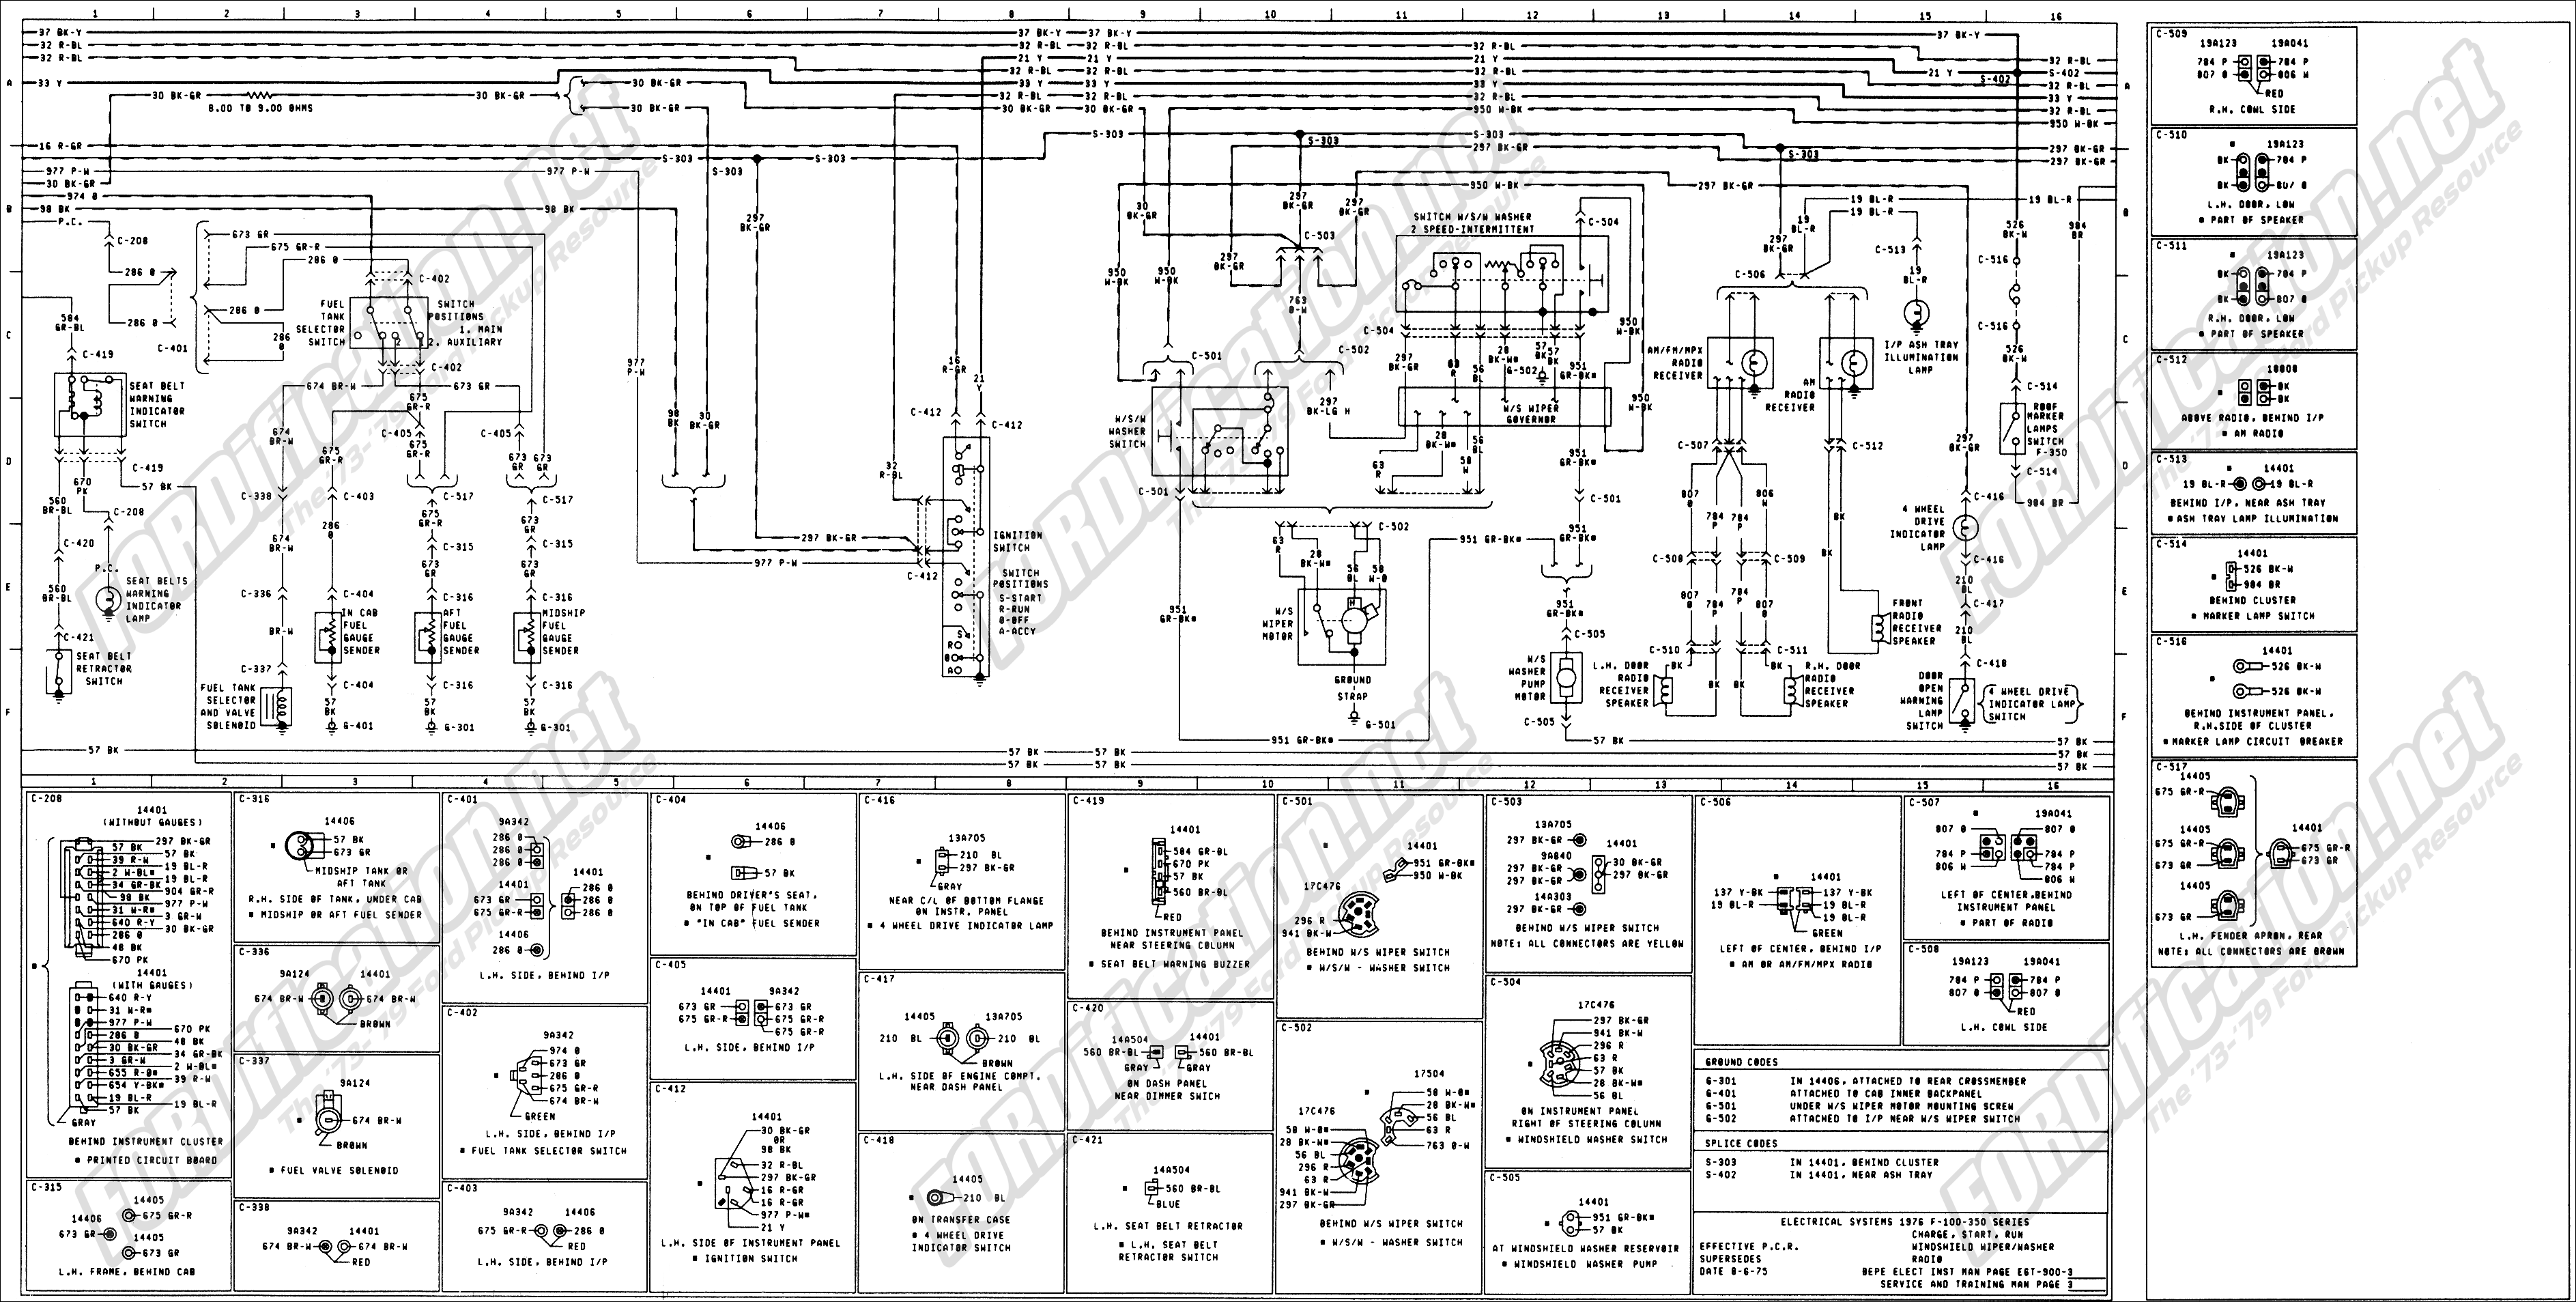 wiring_76master_3of9 1973 ford f250 wiring diagram ford f 150 starter wiring diagram 1964 Ford Fairlane at crackthecode.co